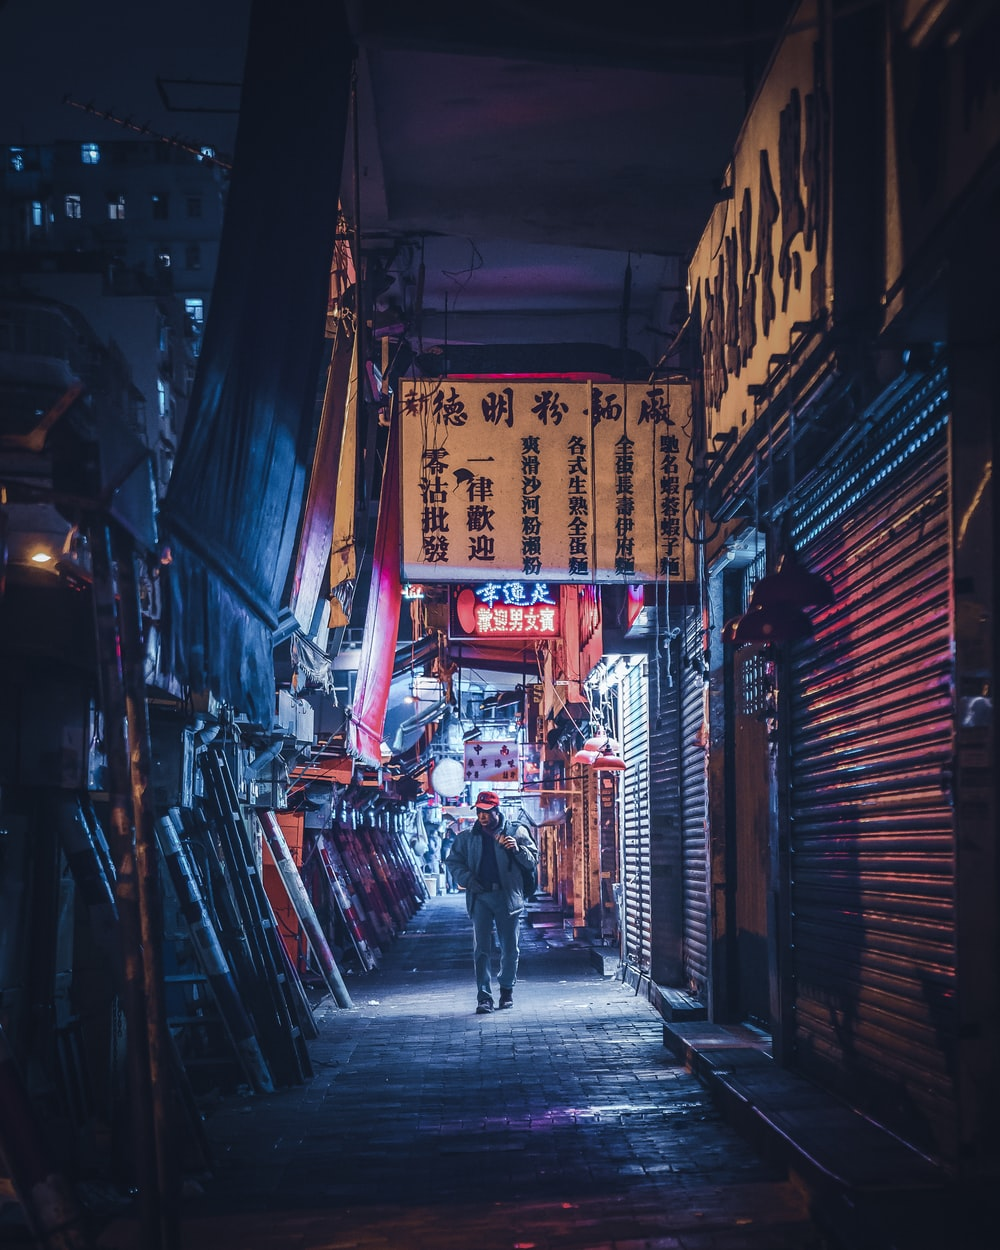 man in denim jacket and jeans walking on pathway near buildings at night